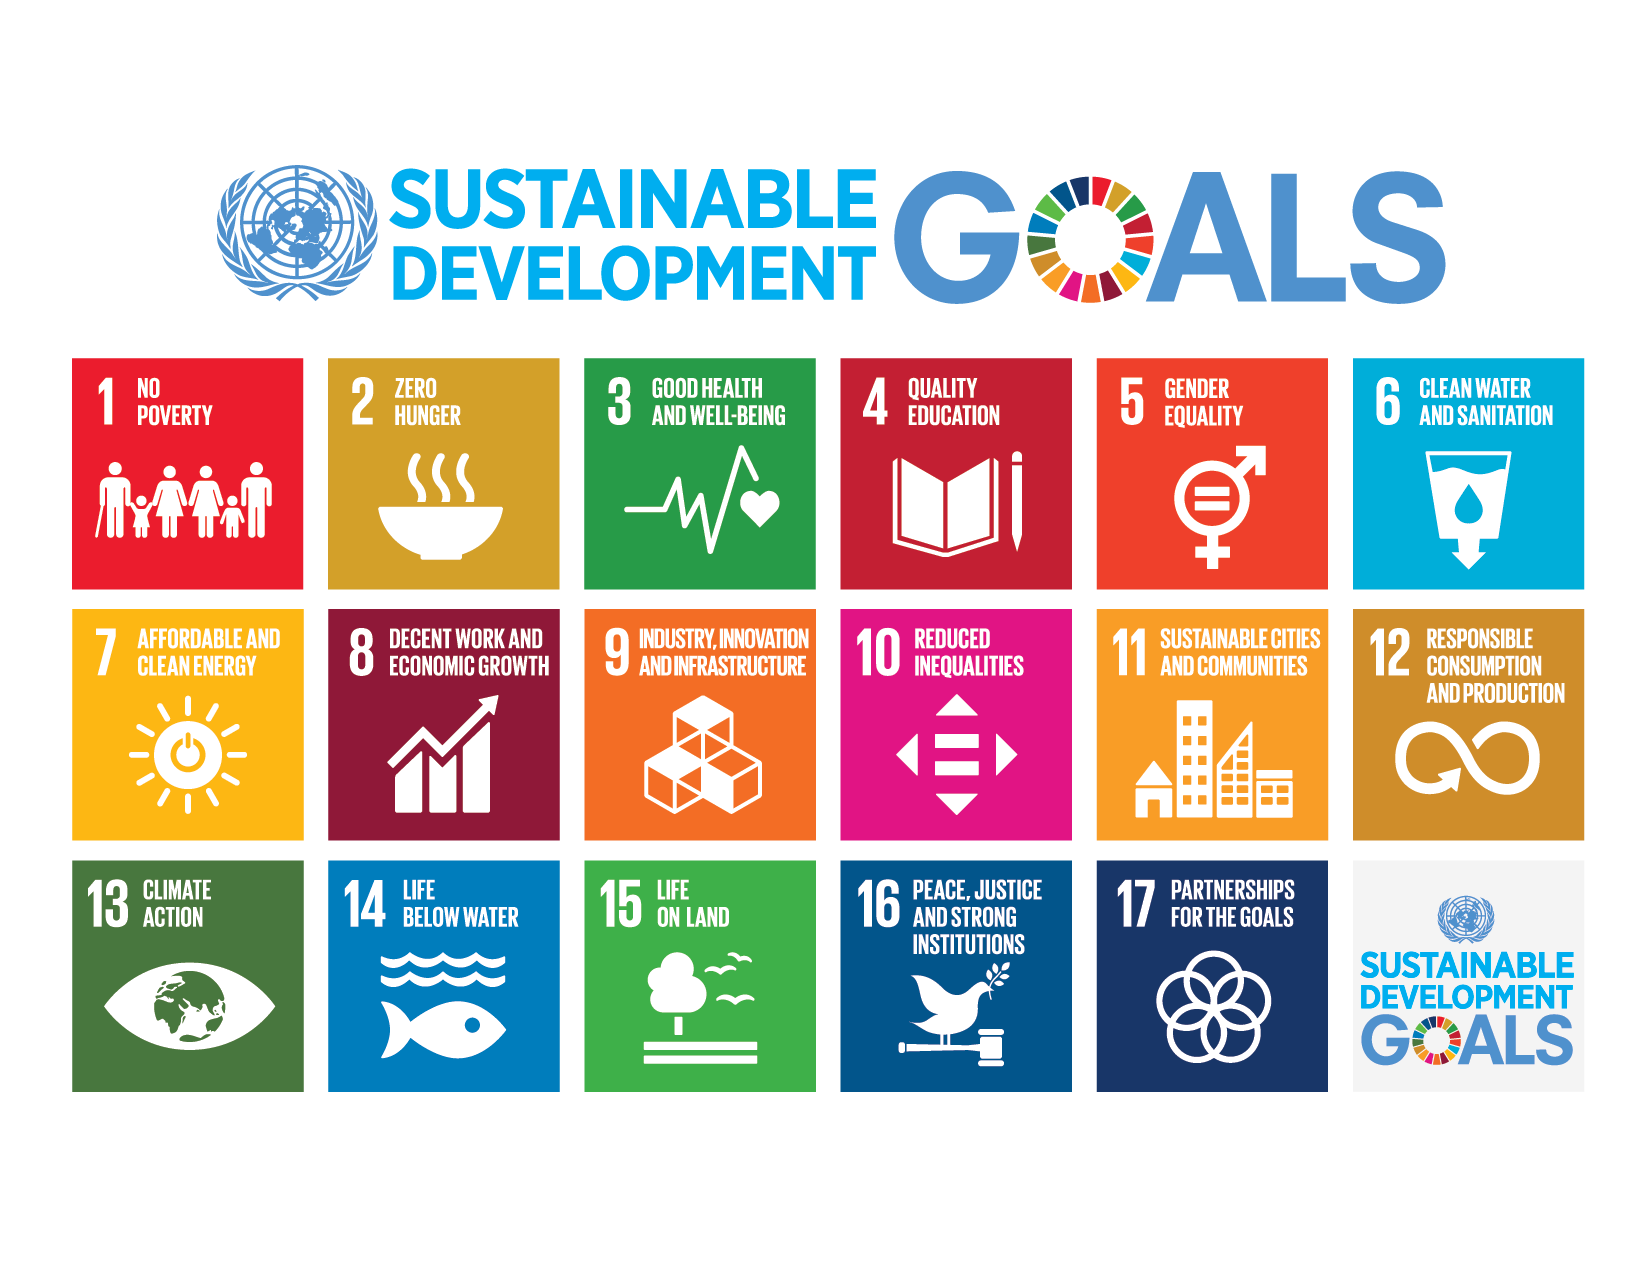 UN Sustainable Development Goals 2015